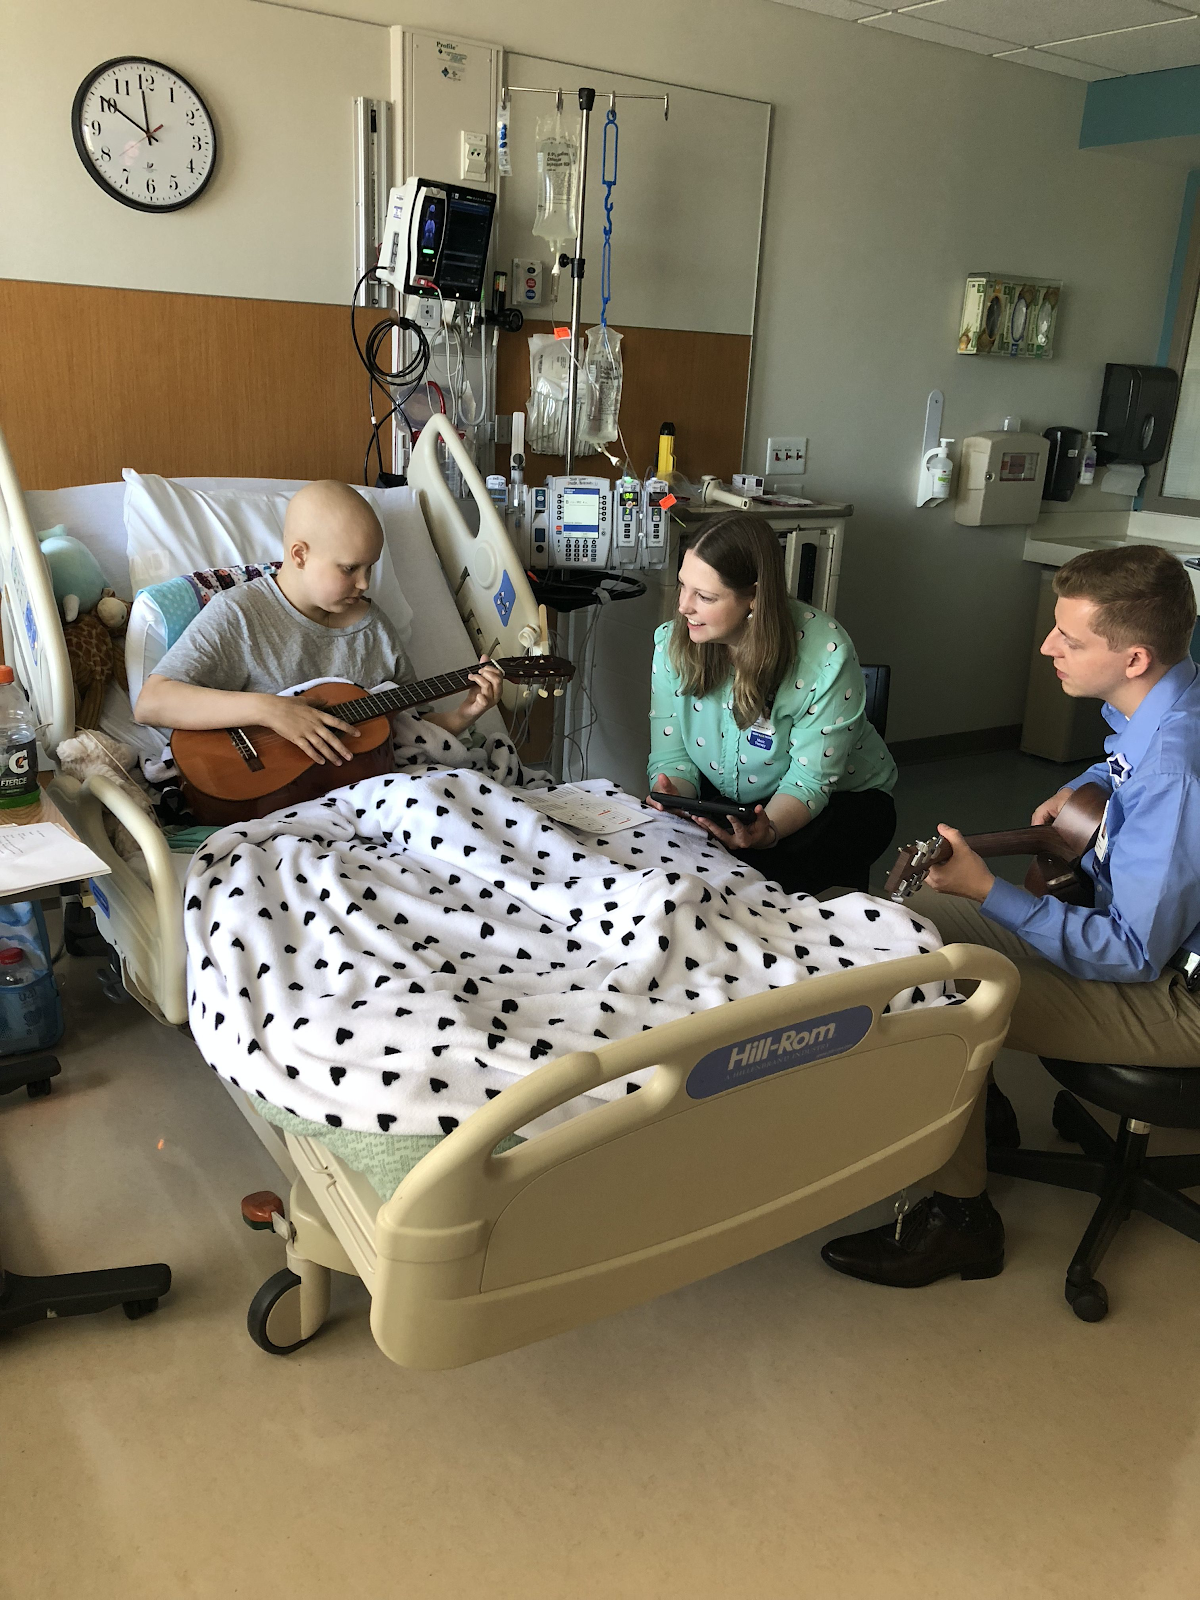 child in hospital bed playing guitar. woman sitting bedside and music therapy sitting at the bottom of the bed playing guitar too.